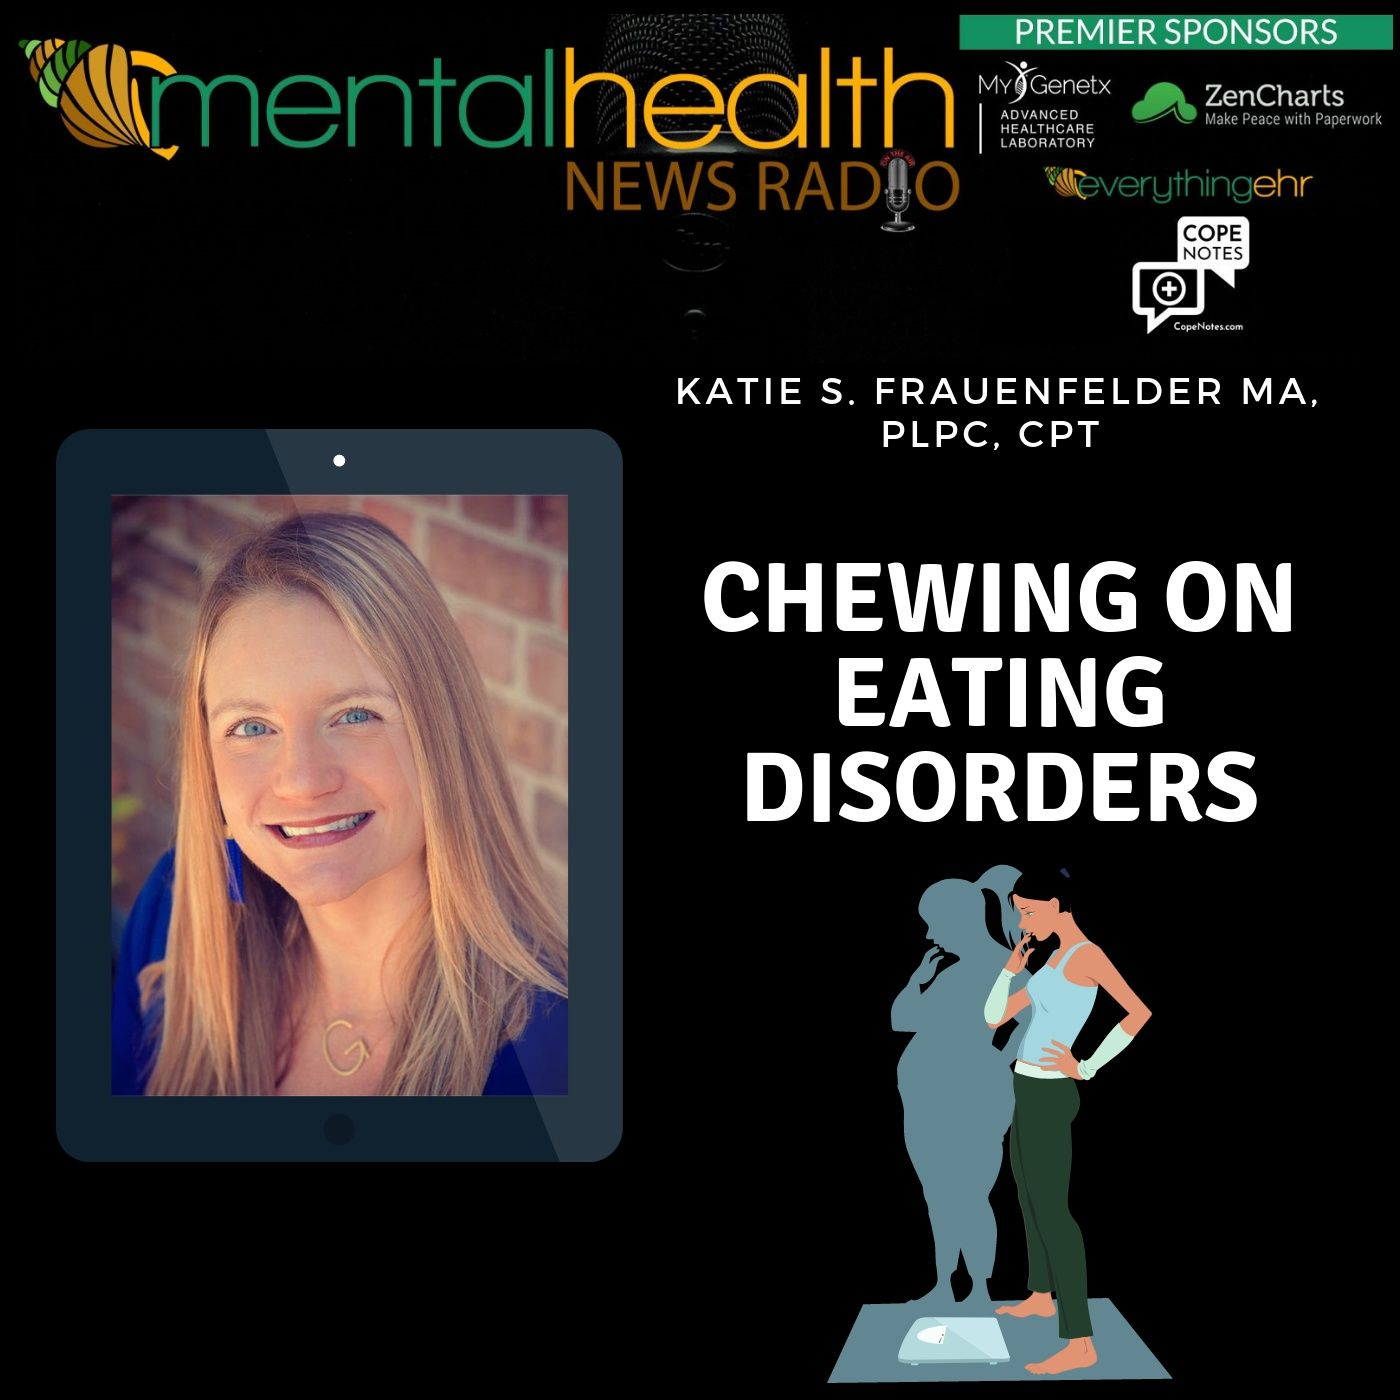 Mental Health News Radio - Chewing On Eating Disorders with Katie S Frauenfelder, MA